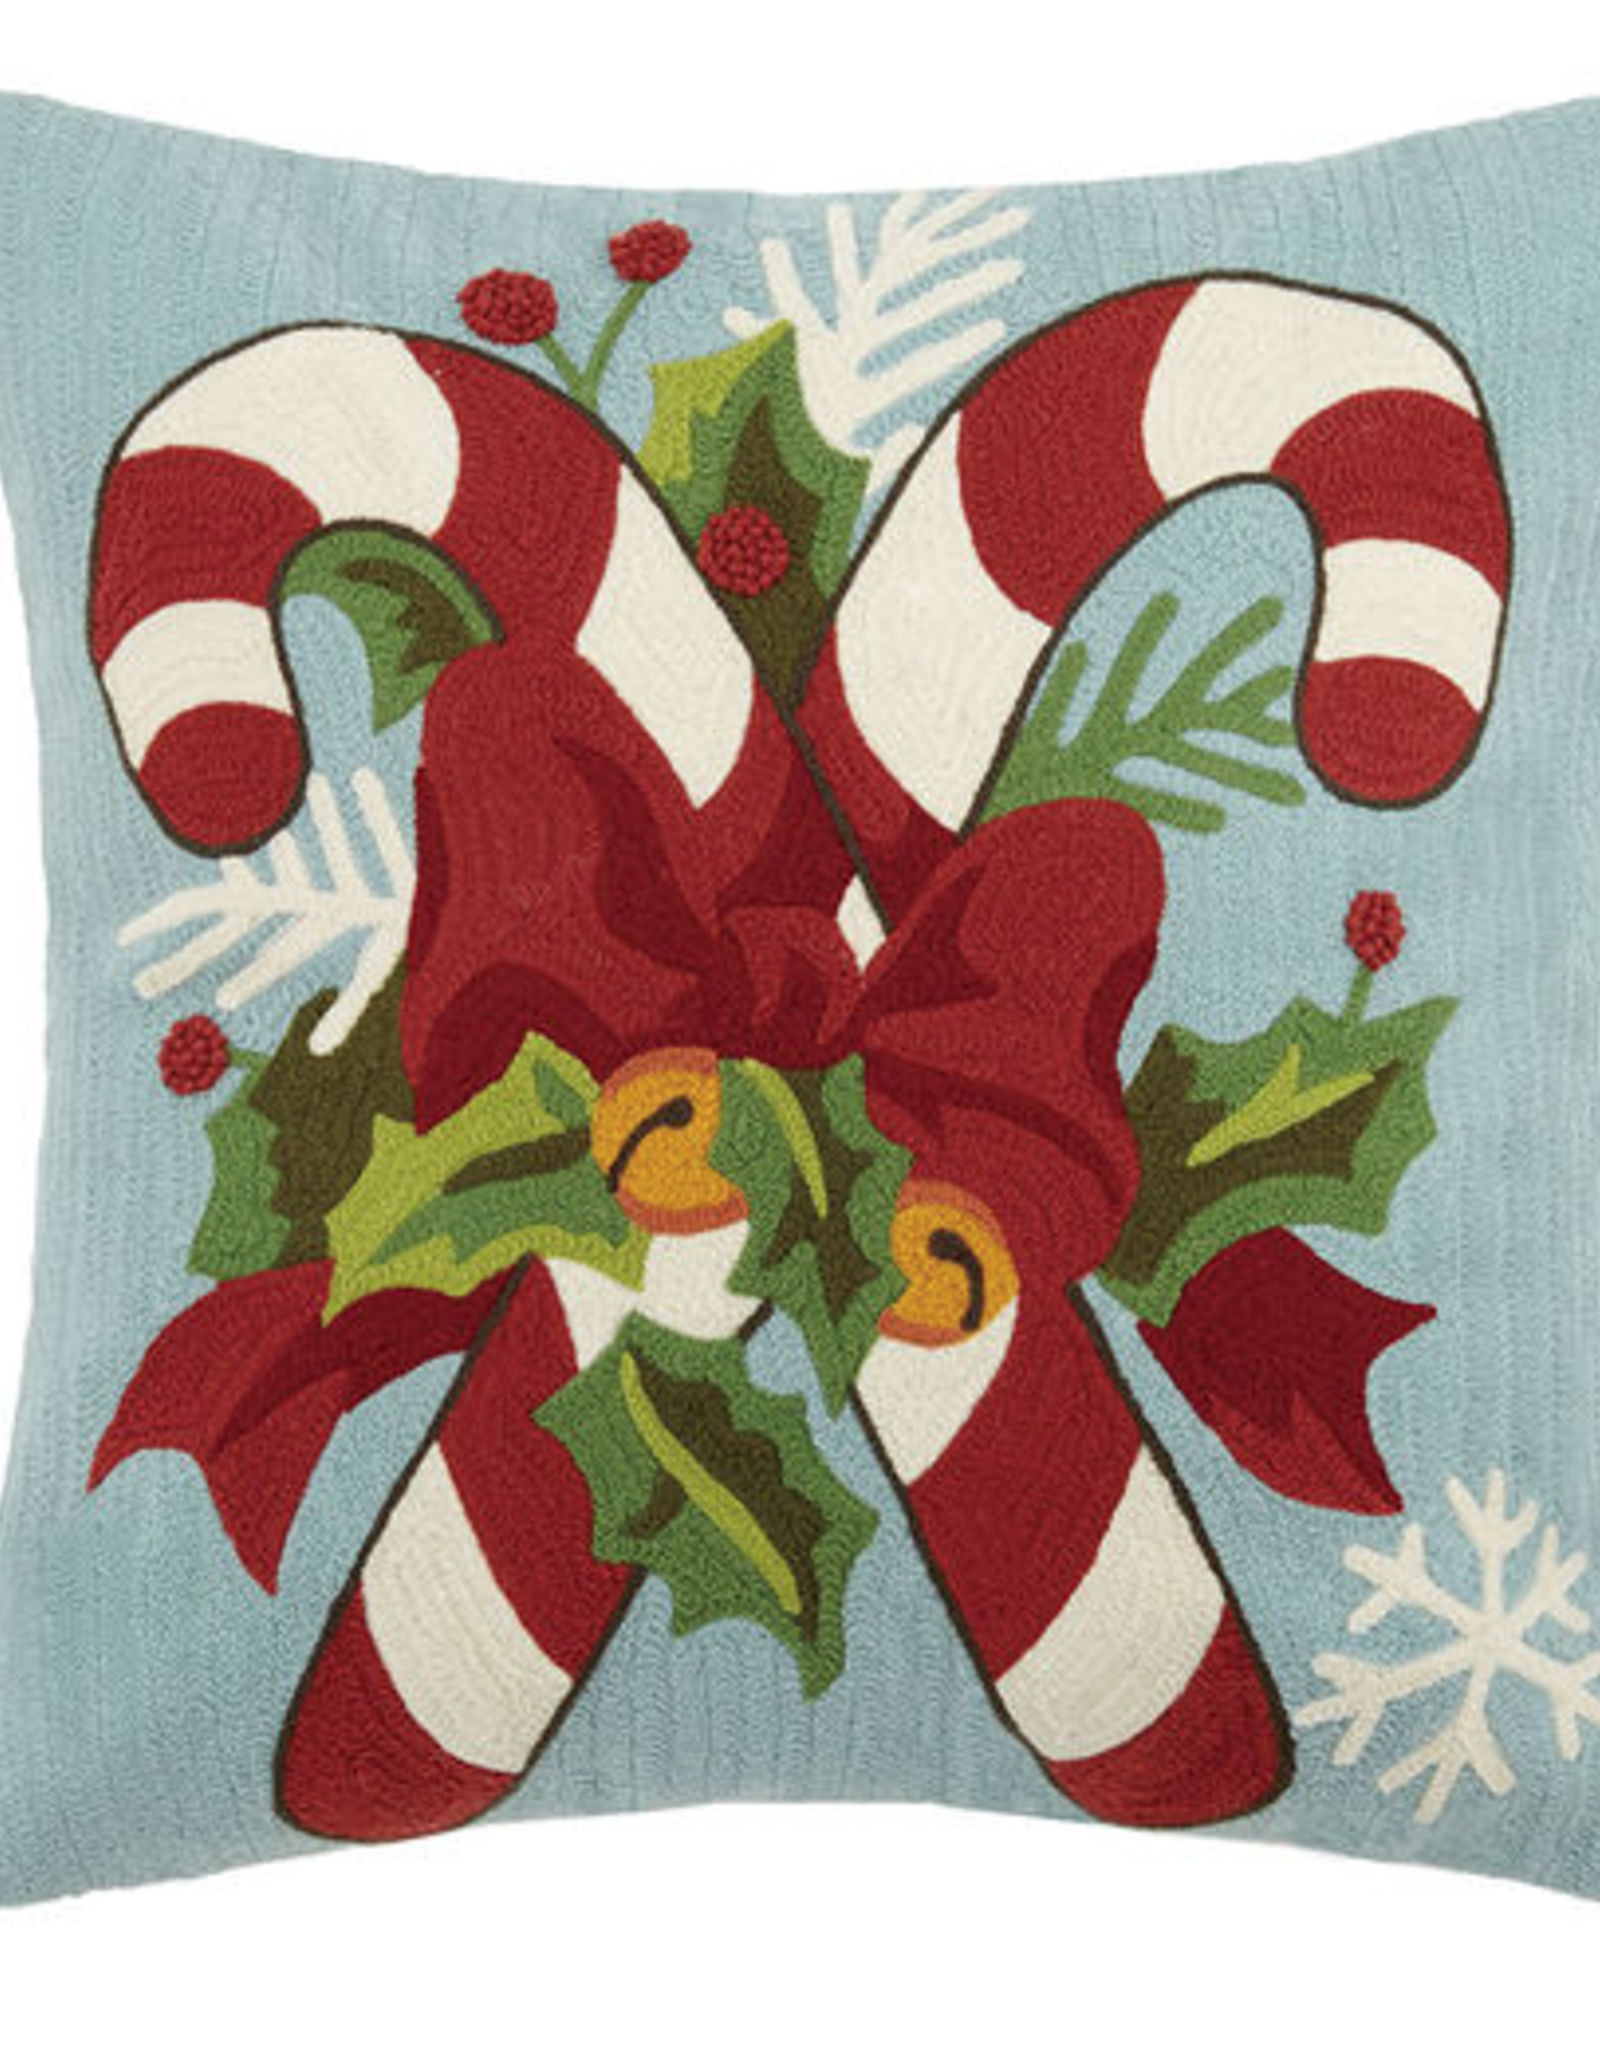 """Candy Cane w/Holly Leaves Crewel Pillow - 18"""" x 18"""""""